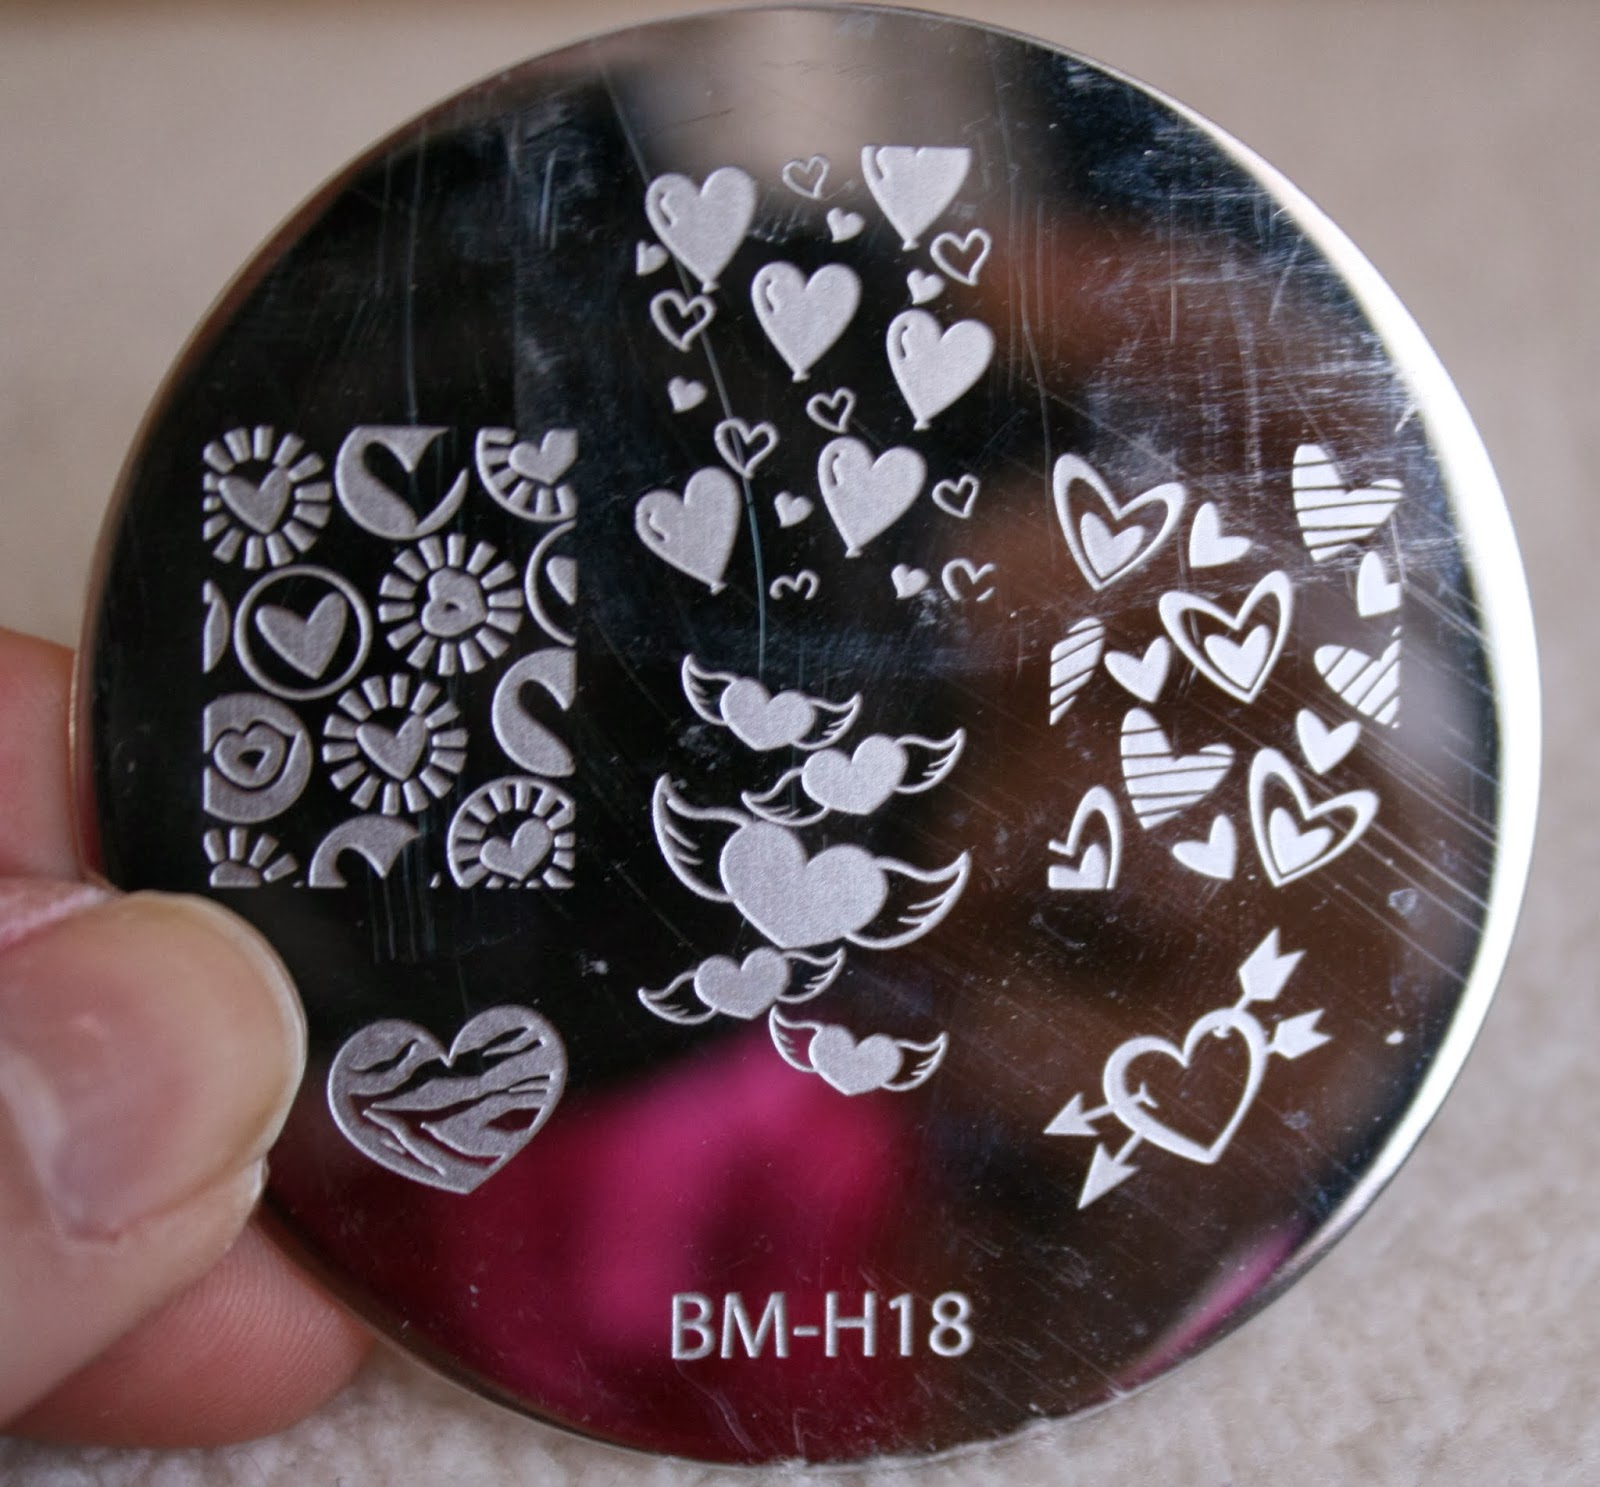 bundle monster nail stamping plates set collection holiday 2013 nails art stamp konad bm-h18